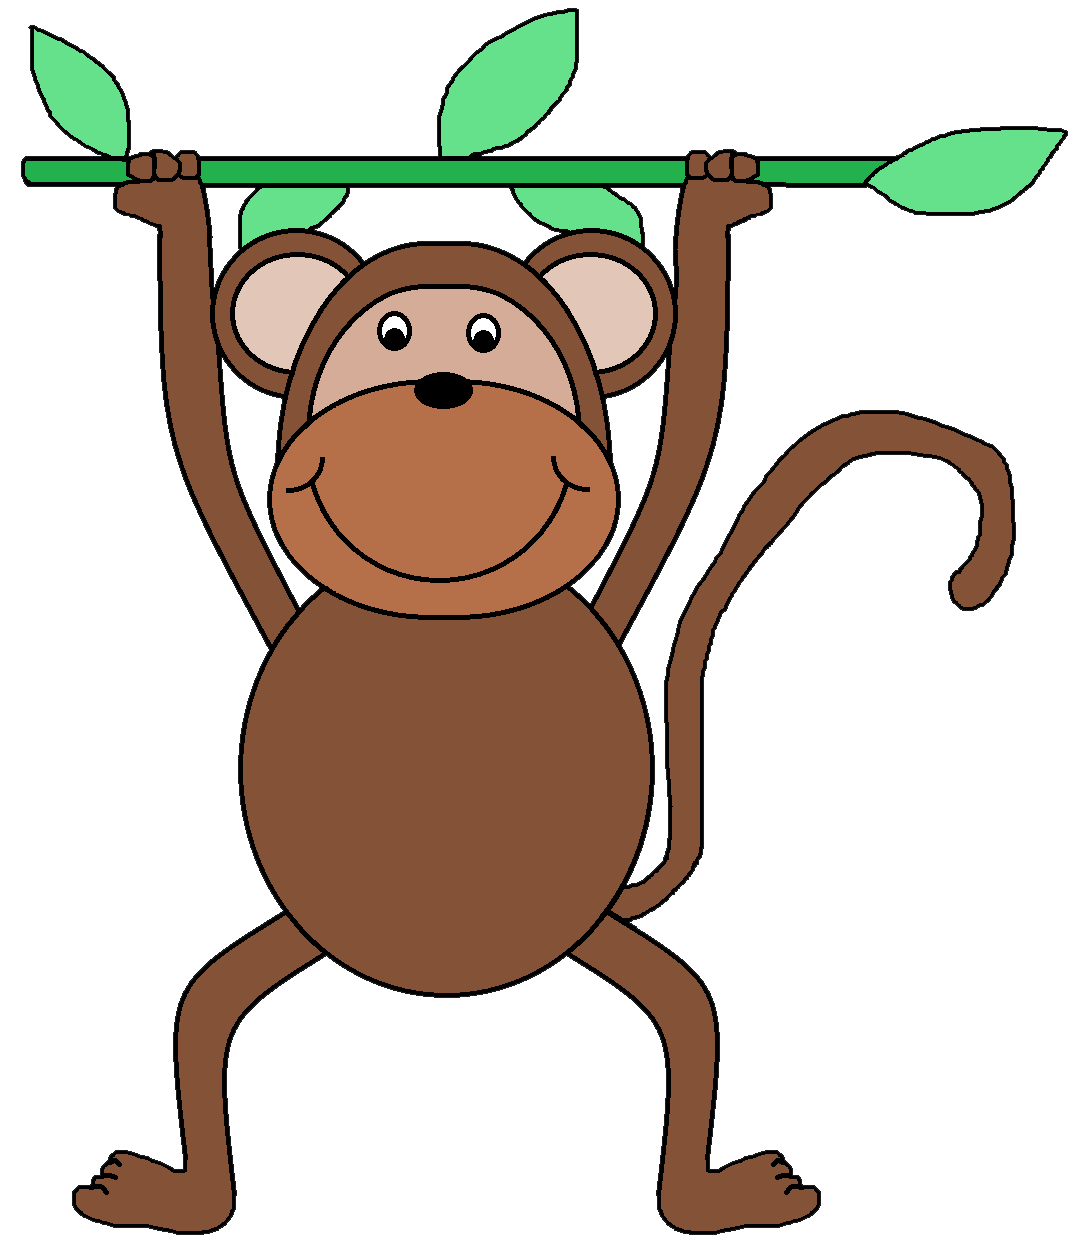 jpg transparent library Free zoo at getdrawings. Ape clipart kid